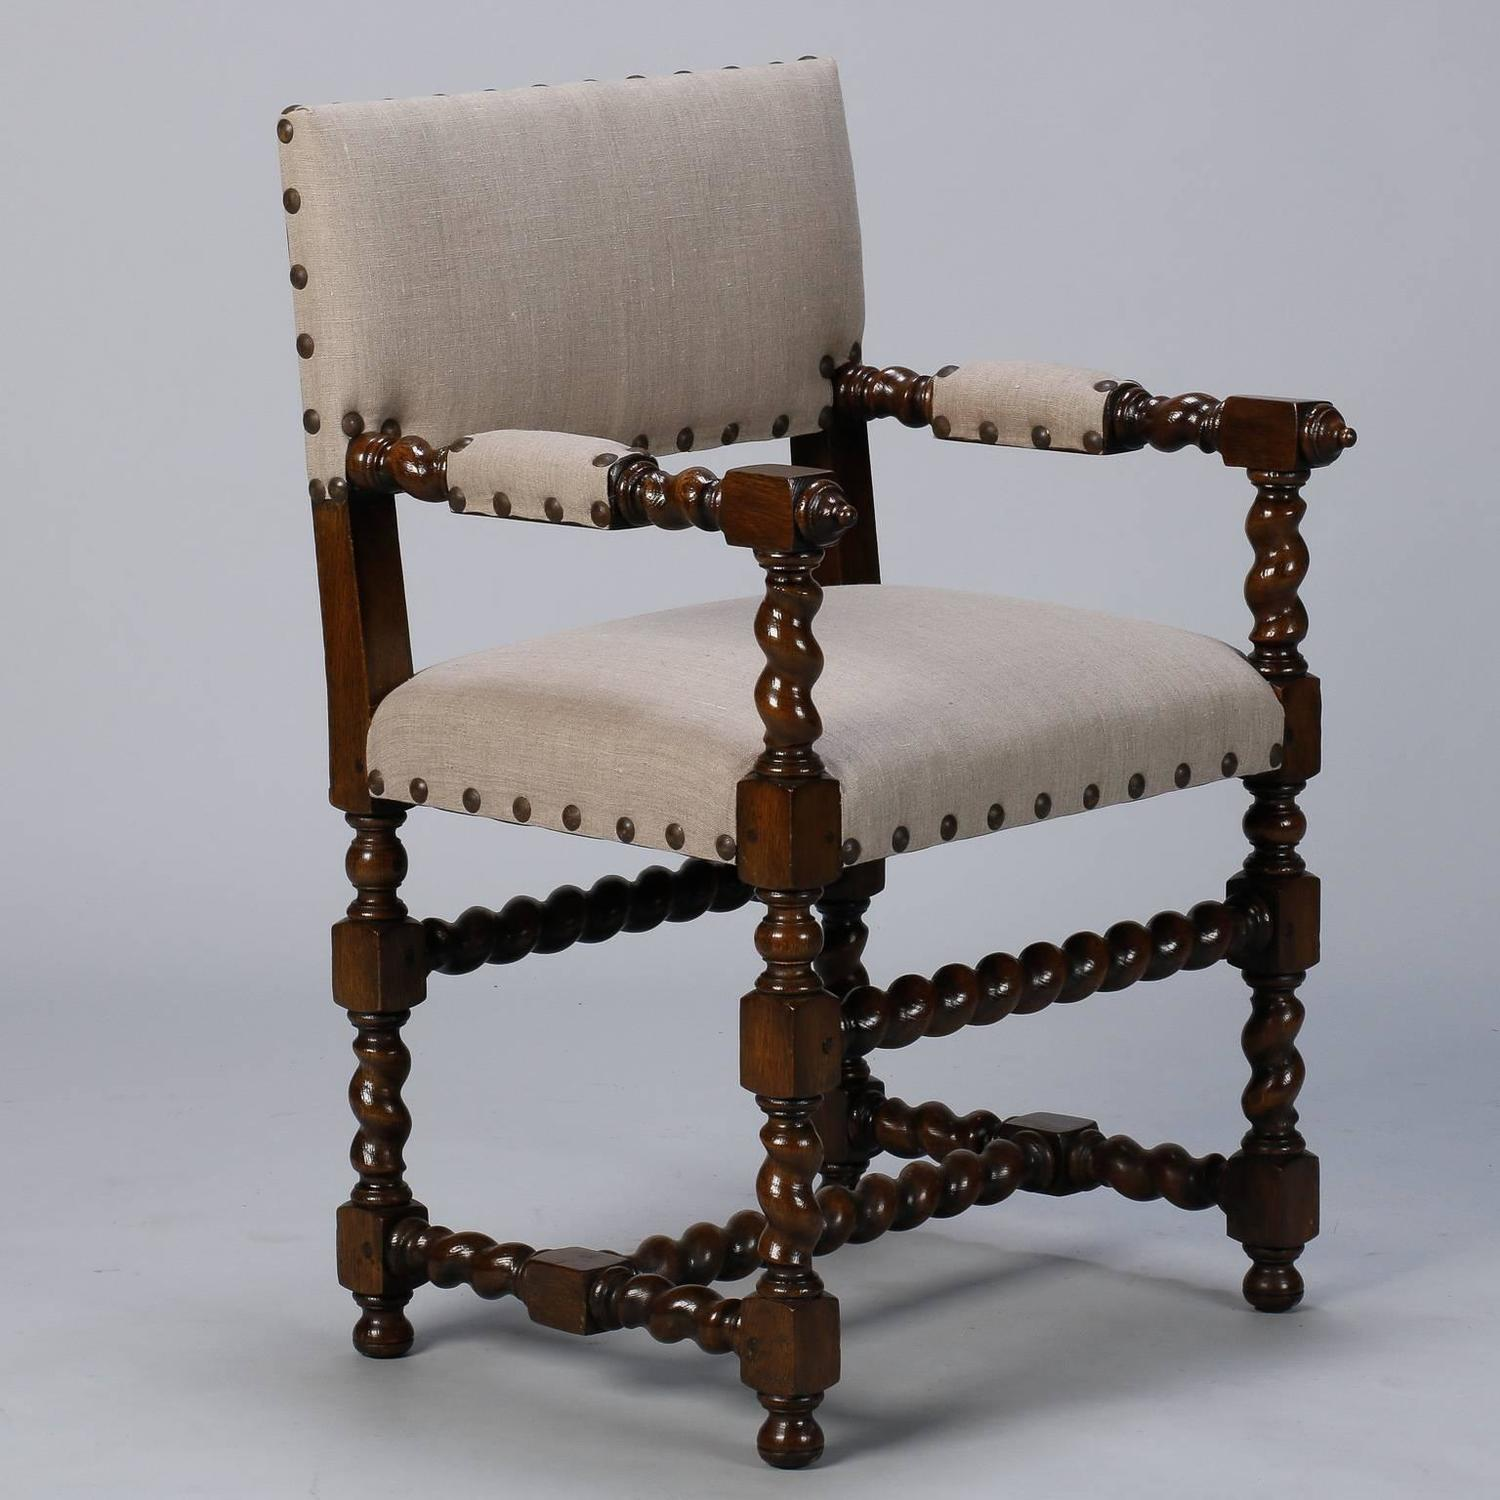 What is the history behind Barley Twist furniture